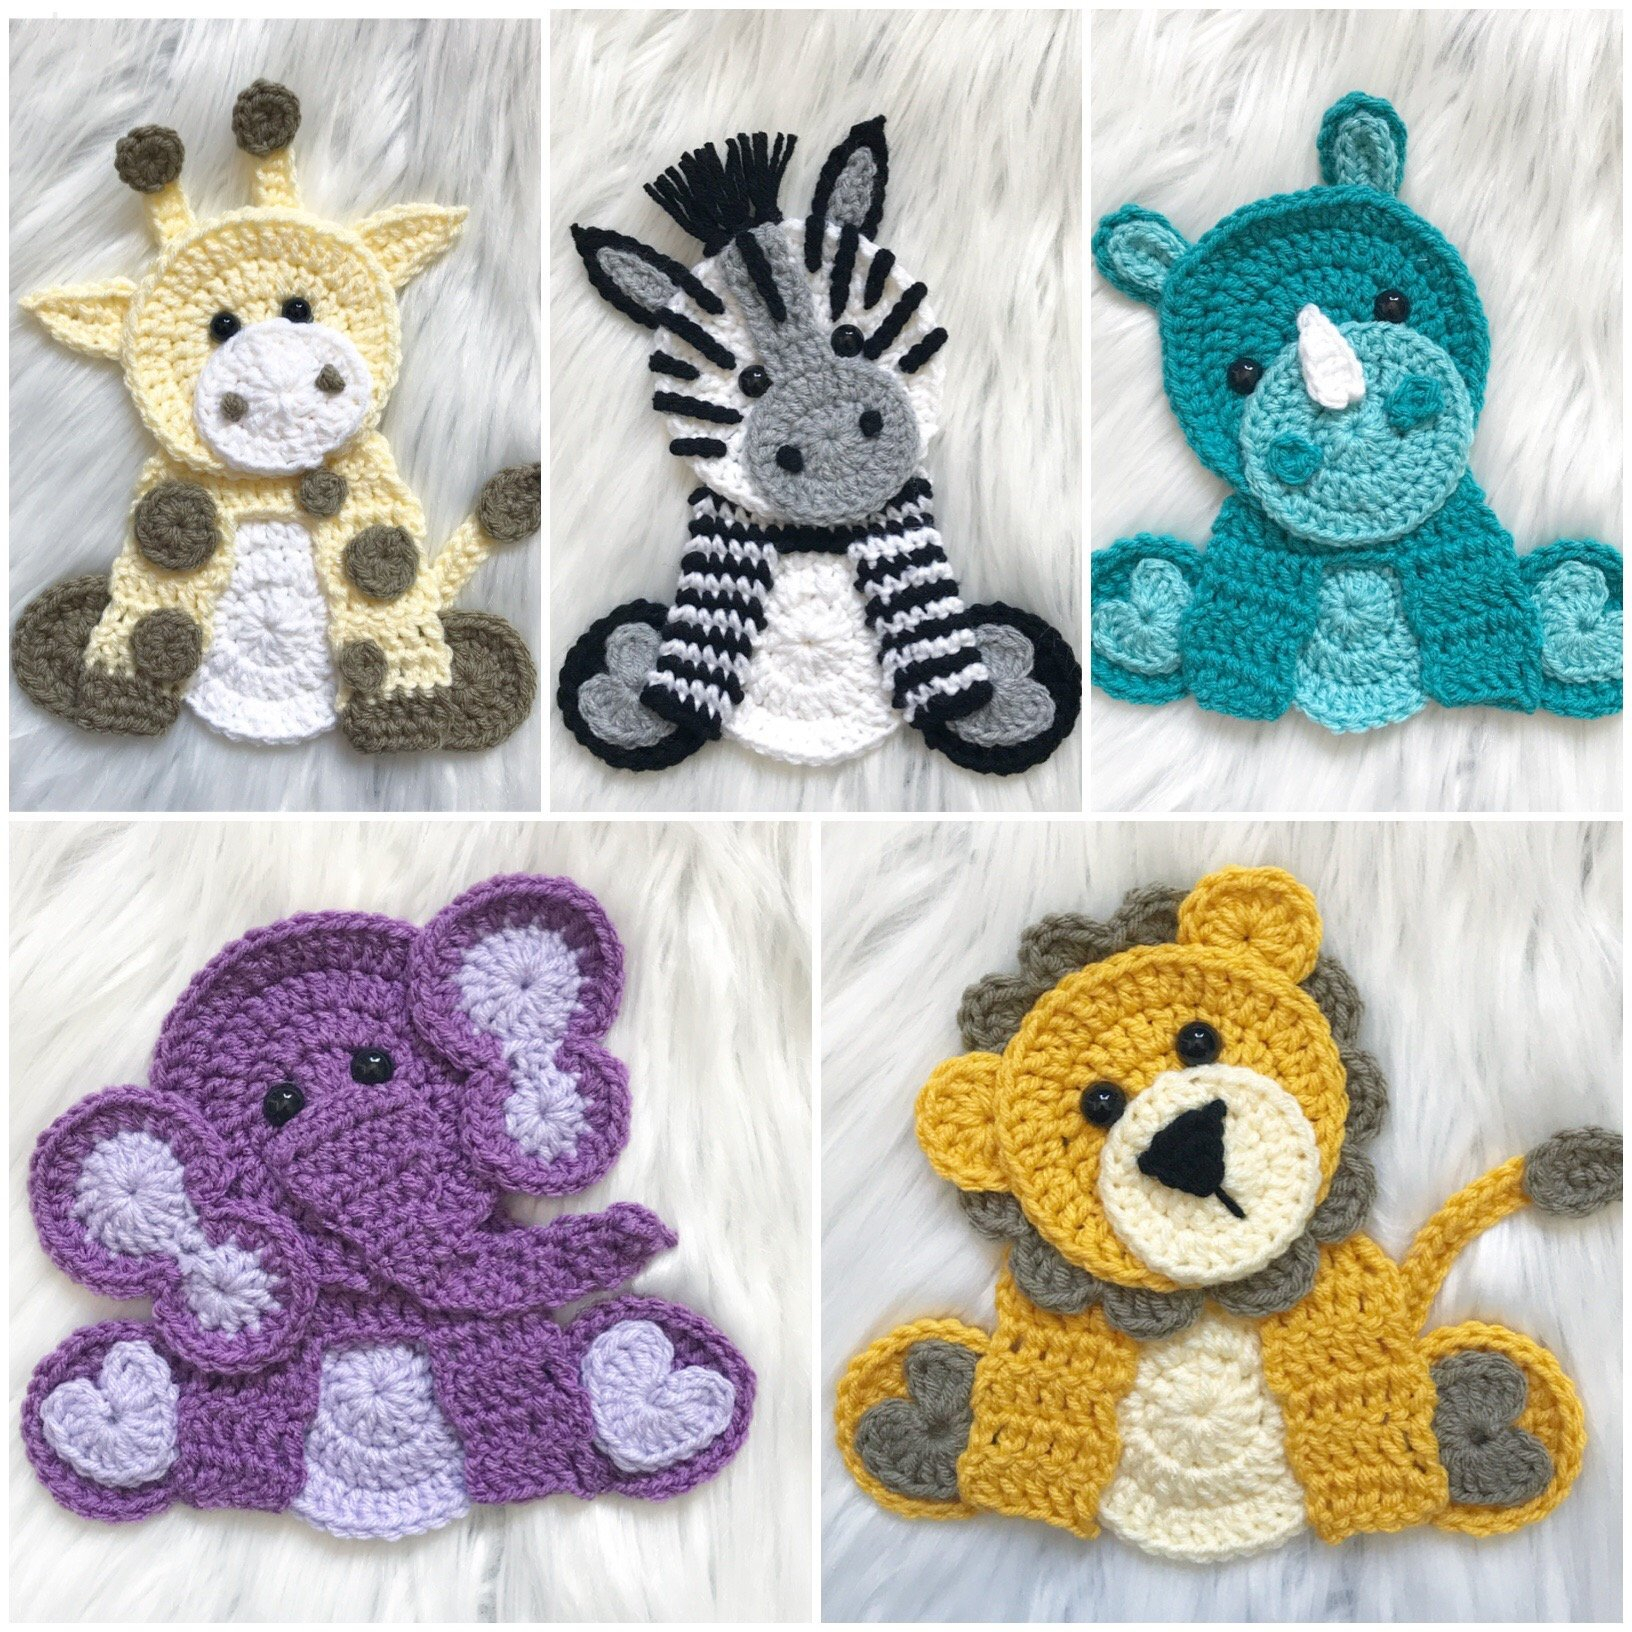 Crochet Applique Patterns Free Animal Crochet Pattern Instant Pdf Download Zoo Animals Crochet Zoo